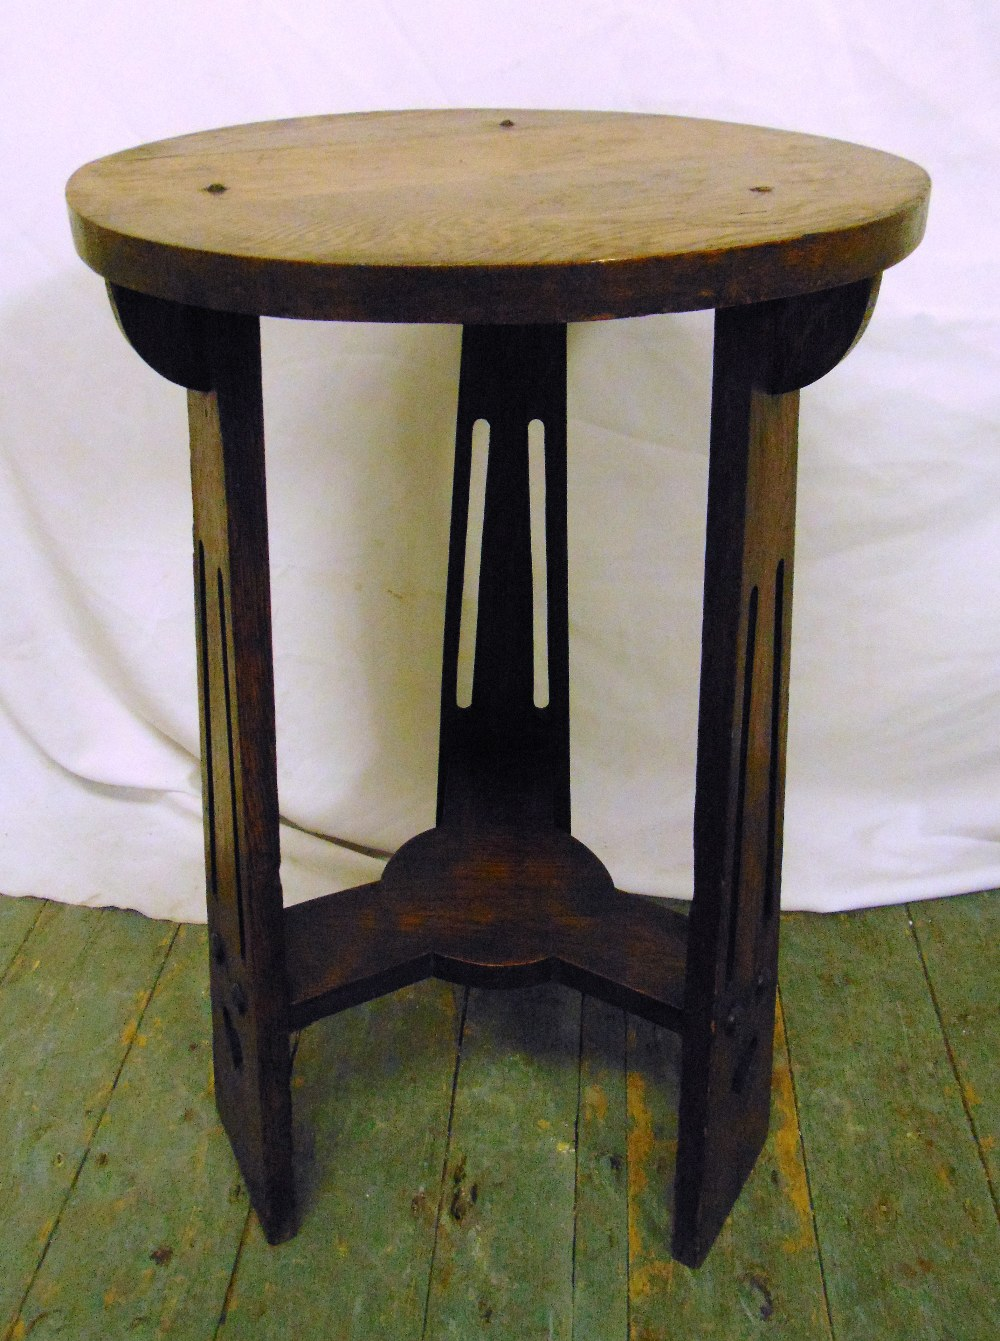 Lot 20 - An early 20th century oak circular Arts and Crafts three legged occasional table, 69 x 42.5cm